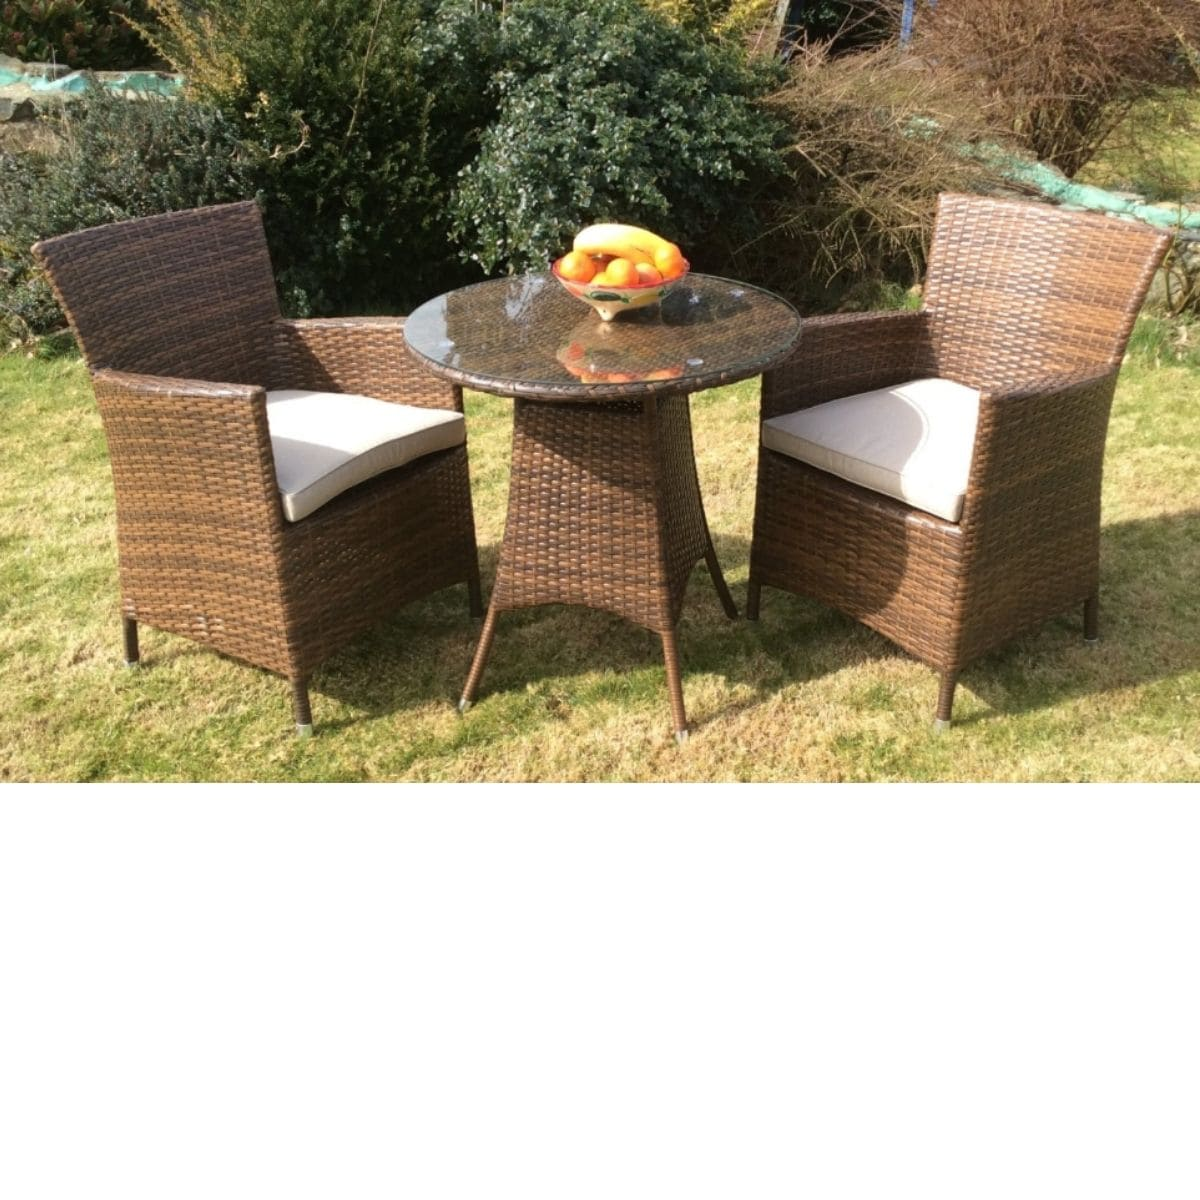 Cabo Garden Table and 2 Chairs